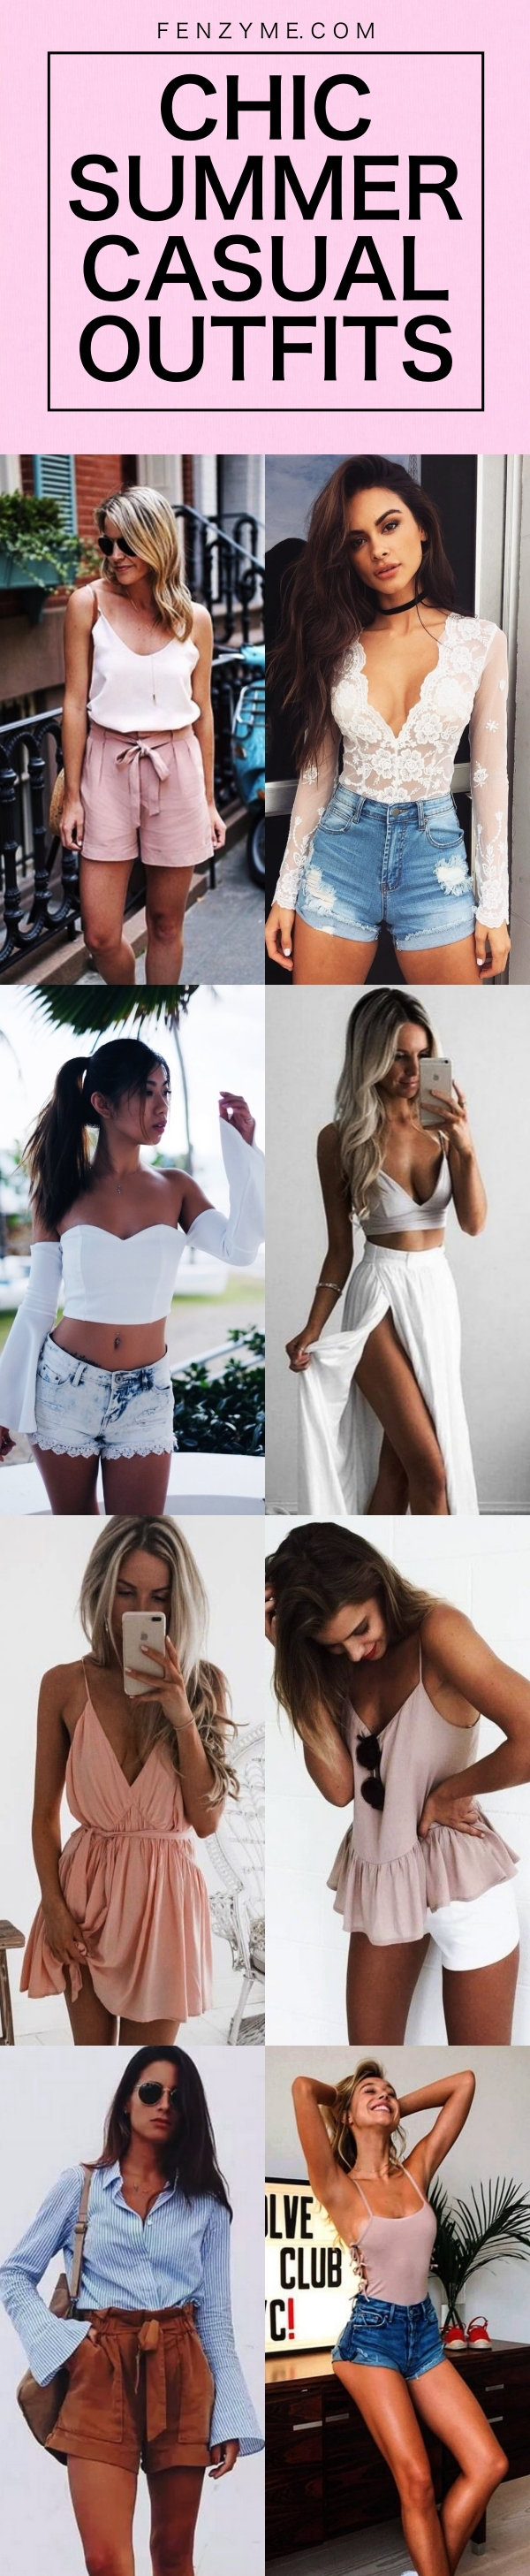 CHIC SUMMER CASUAL OUTFITS